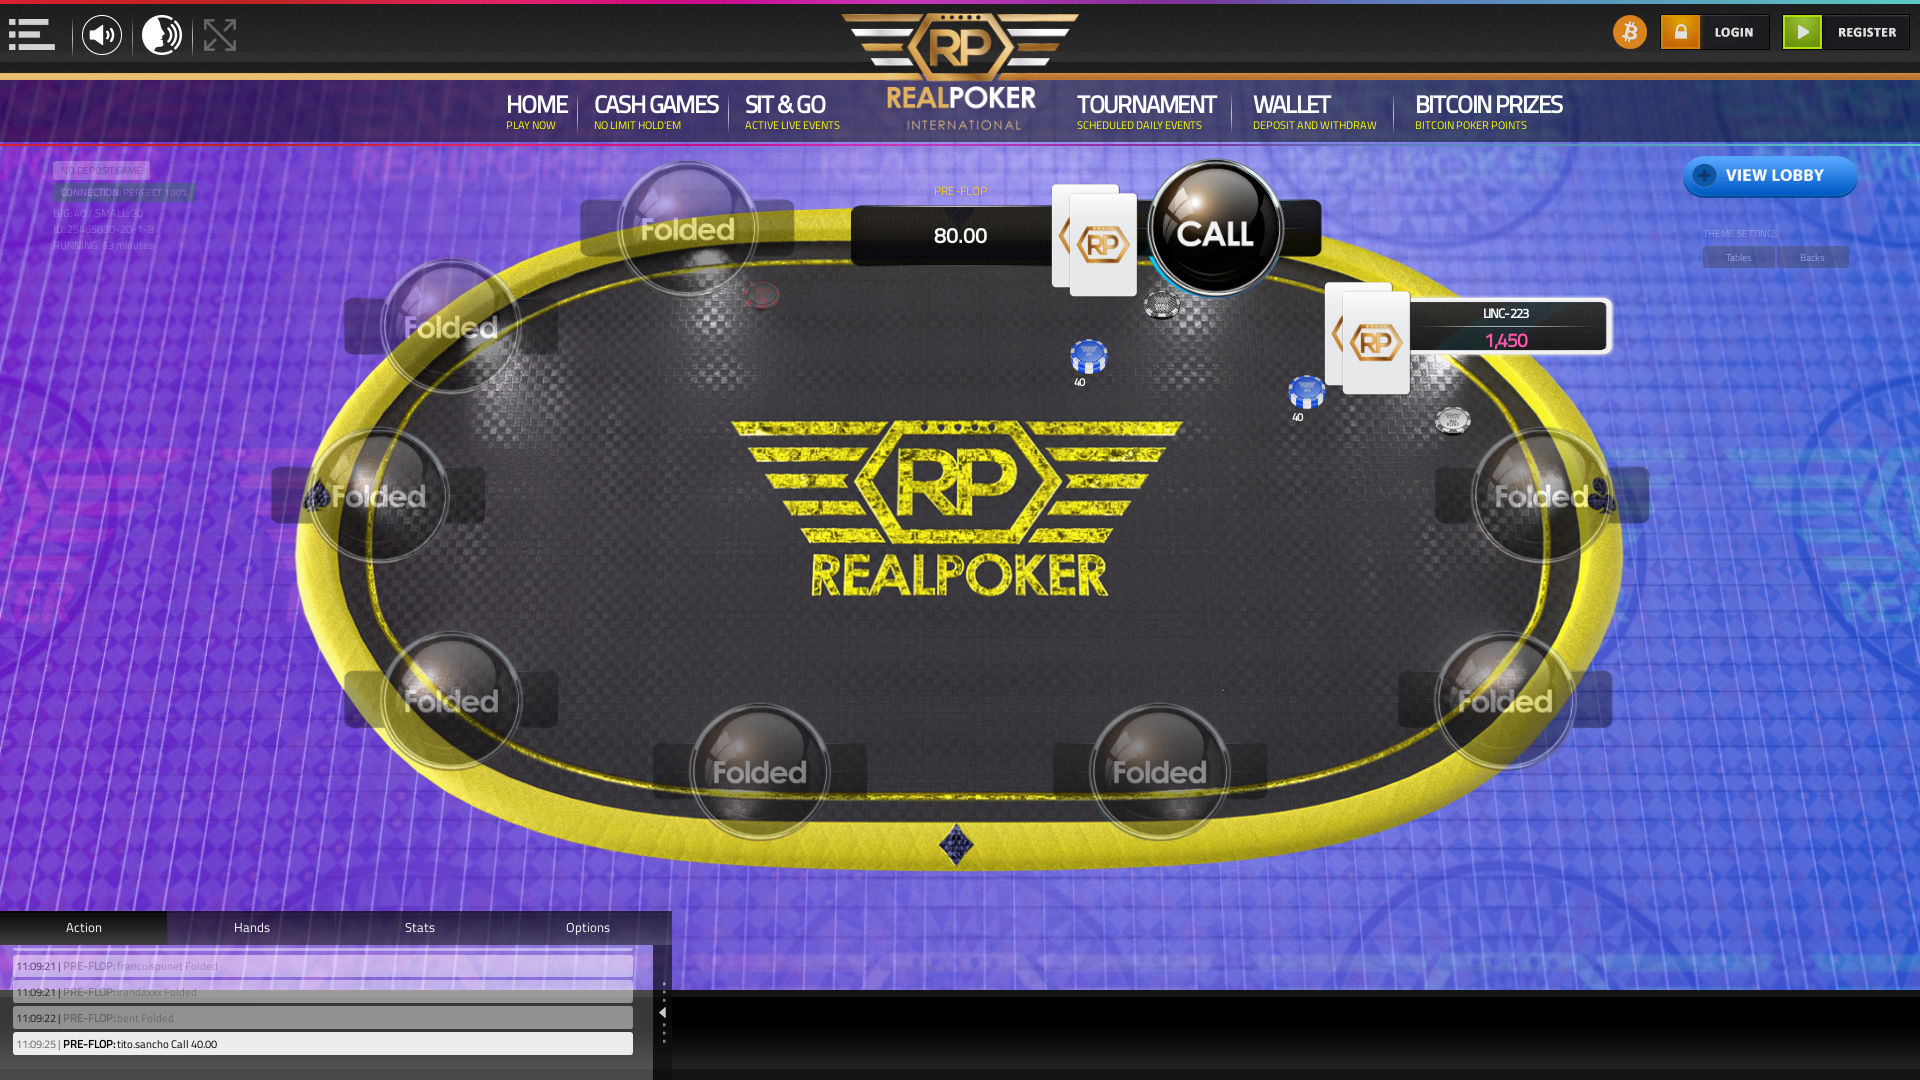 10 player texas holdem table at real poker with the table id 25485830